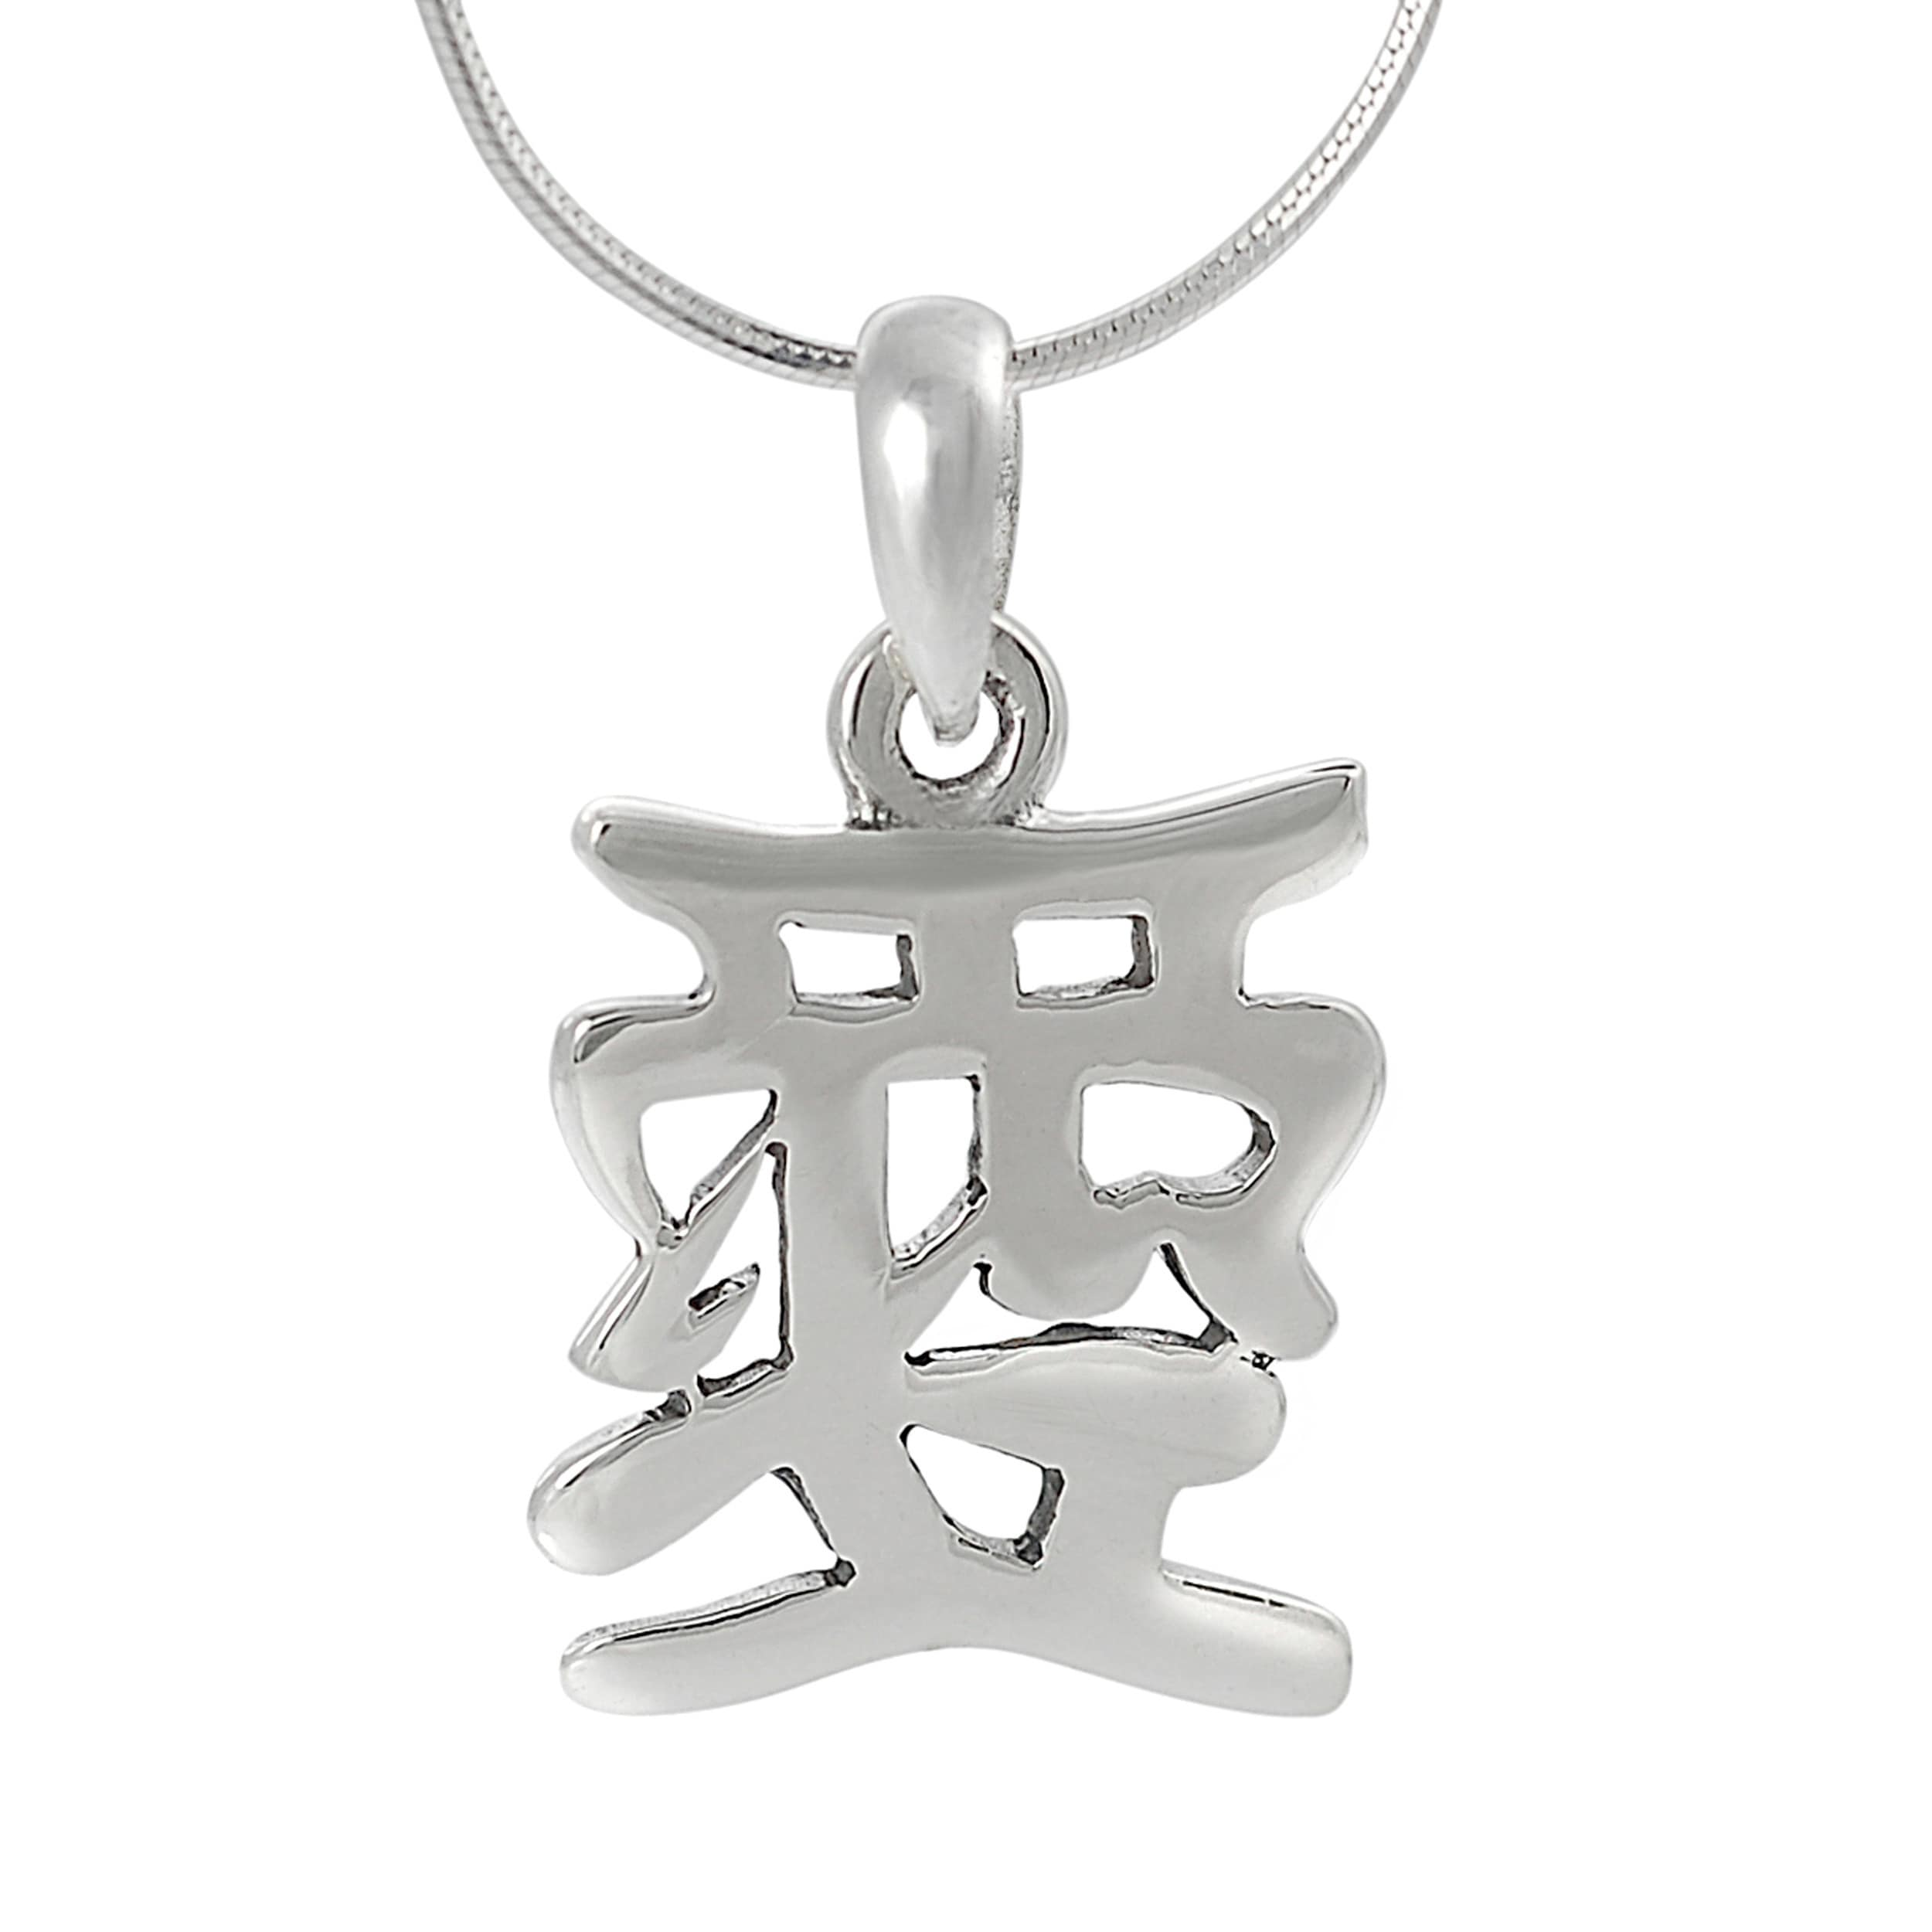 47feedae674f3 Sterling Silver Chinese Character Pendant Necklace